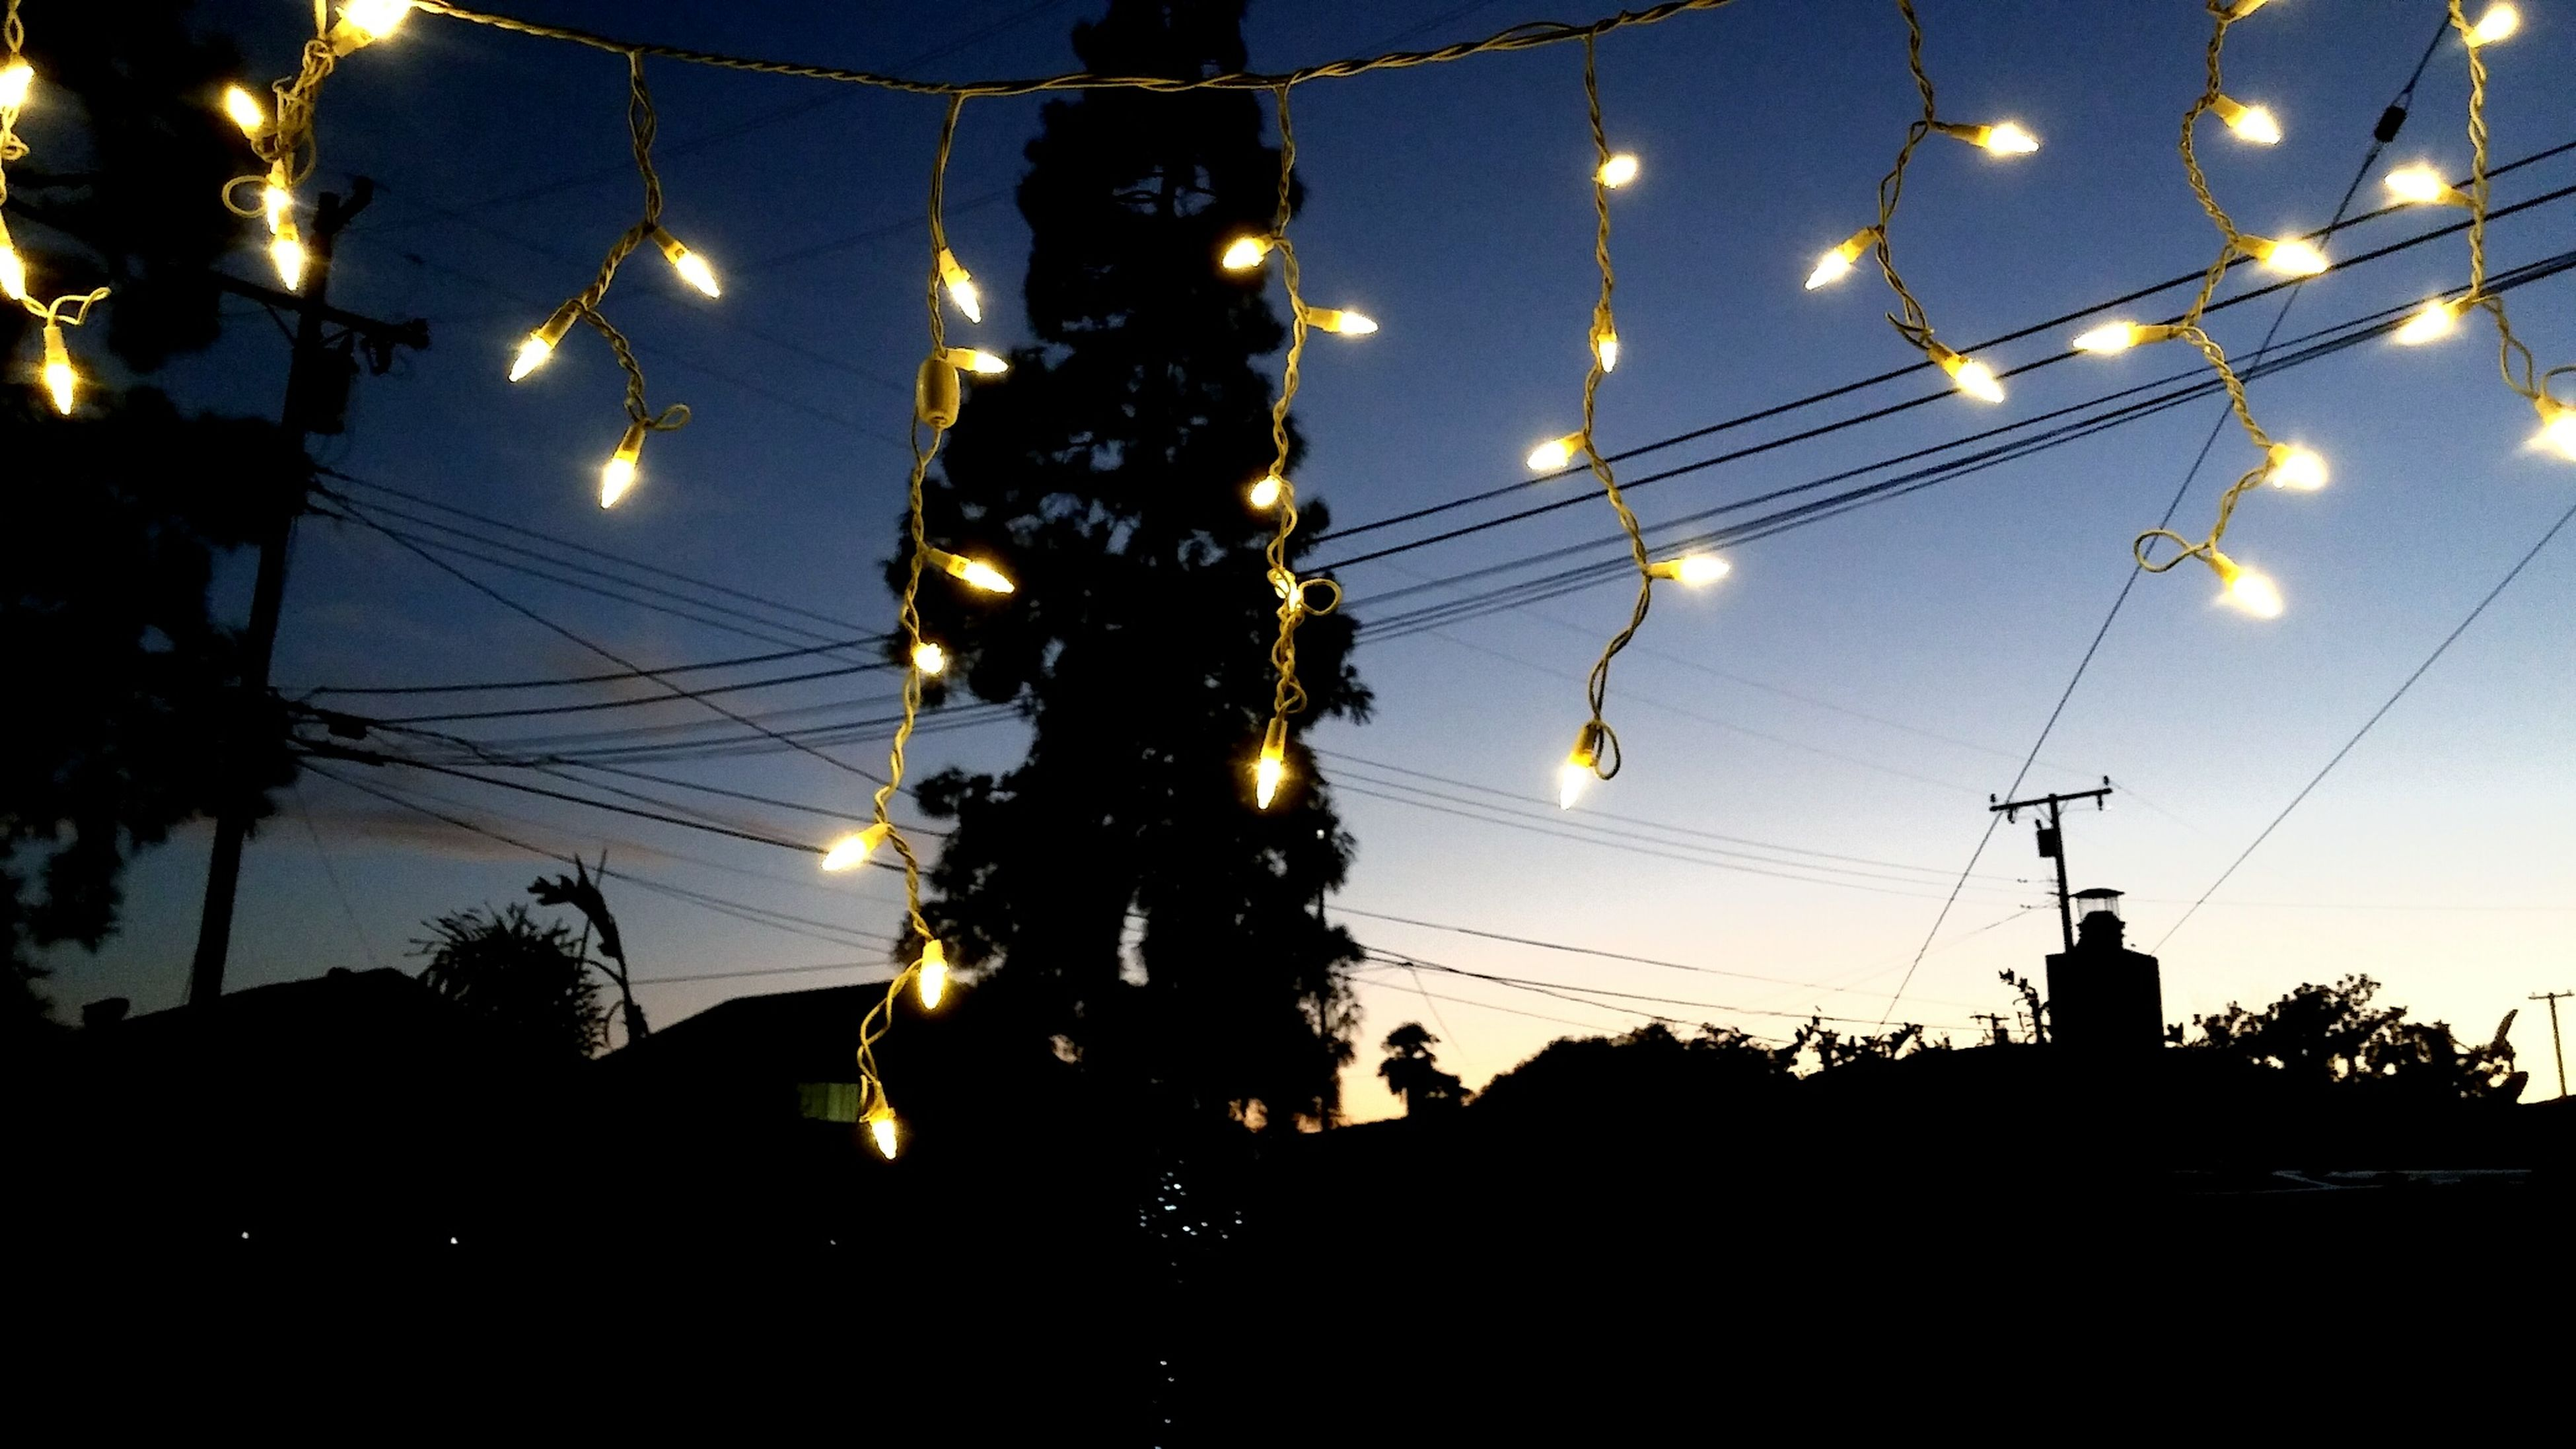 Beautifully Organized Tree Sky Low Angle View Illuminated Electricity  Christmas Lights Night Outdoors Imperfectsymmetry